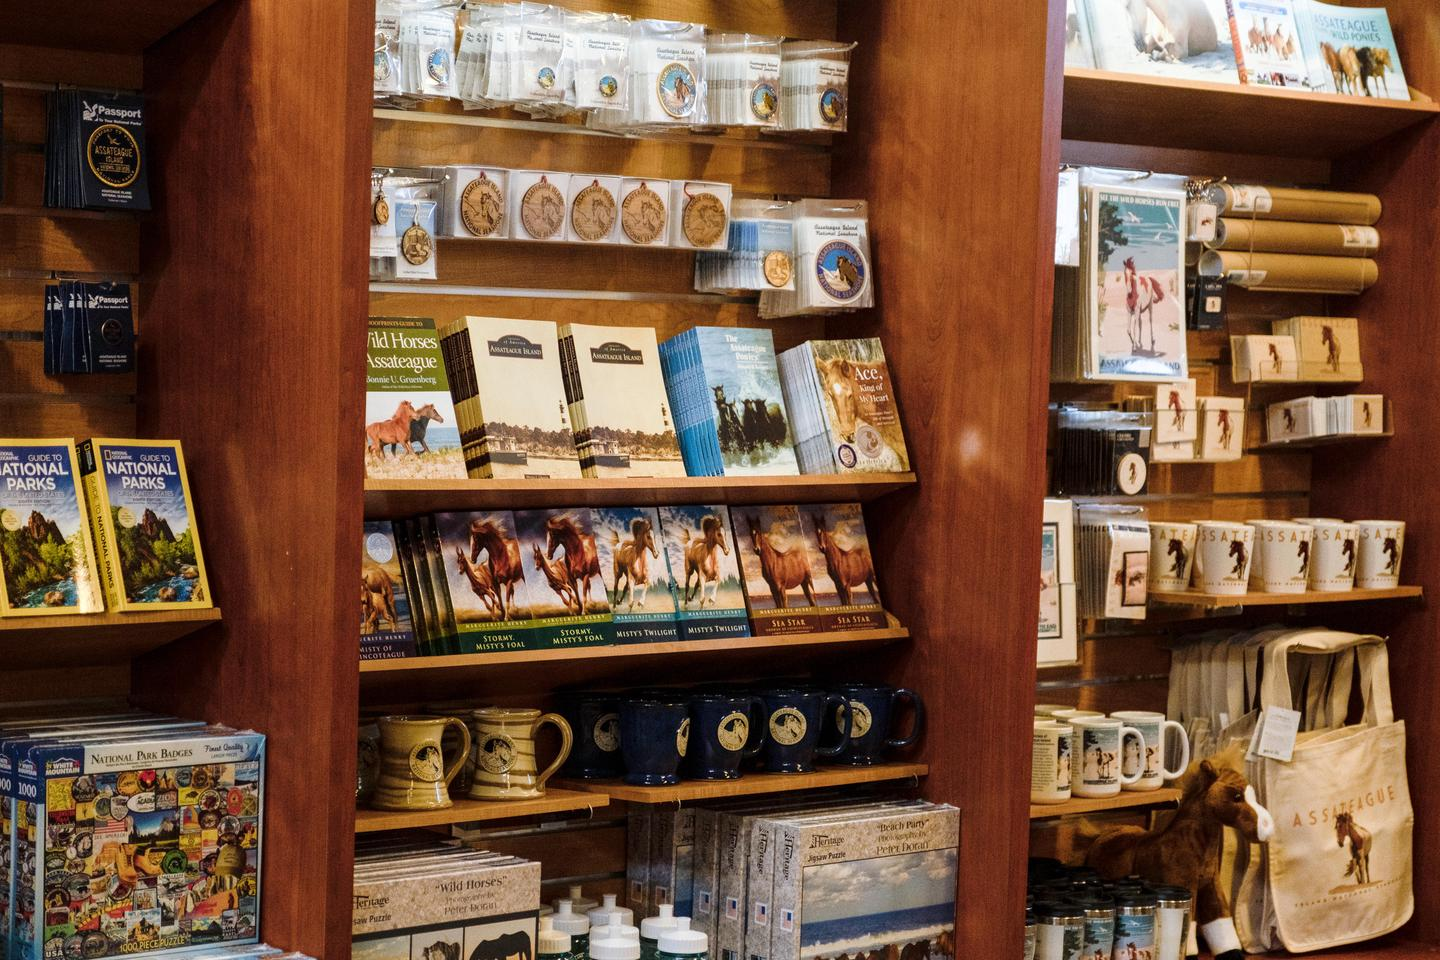 BookstoreImage of the America's National Parks Bookstore located inside the Visitor Center